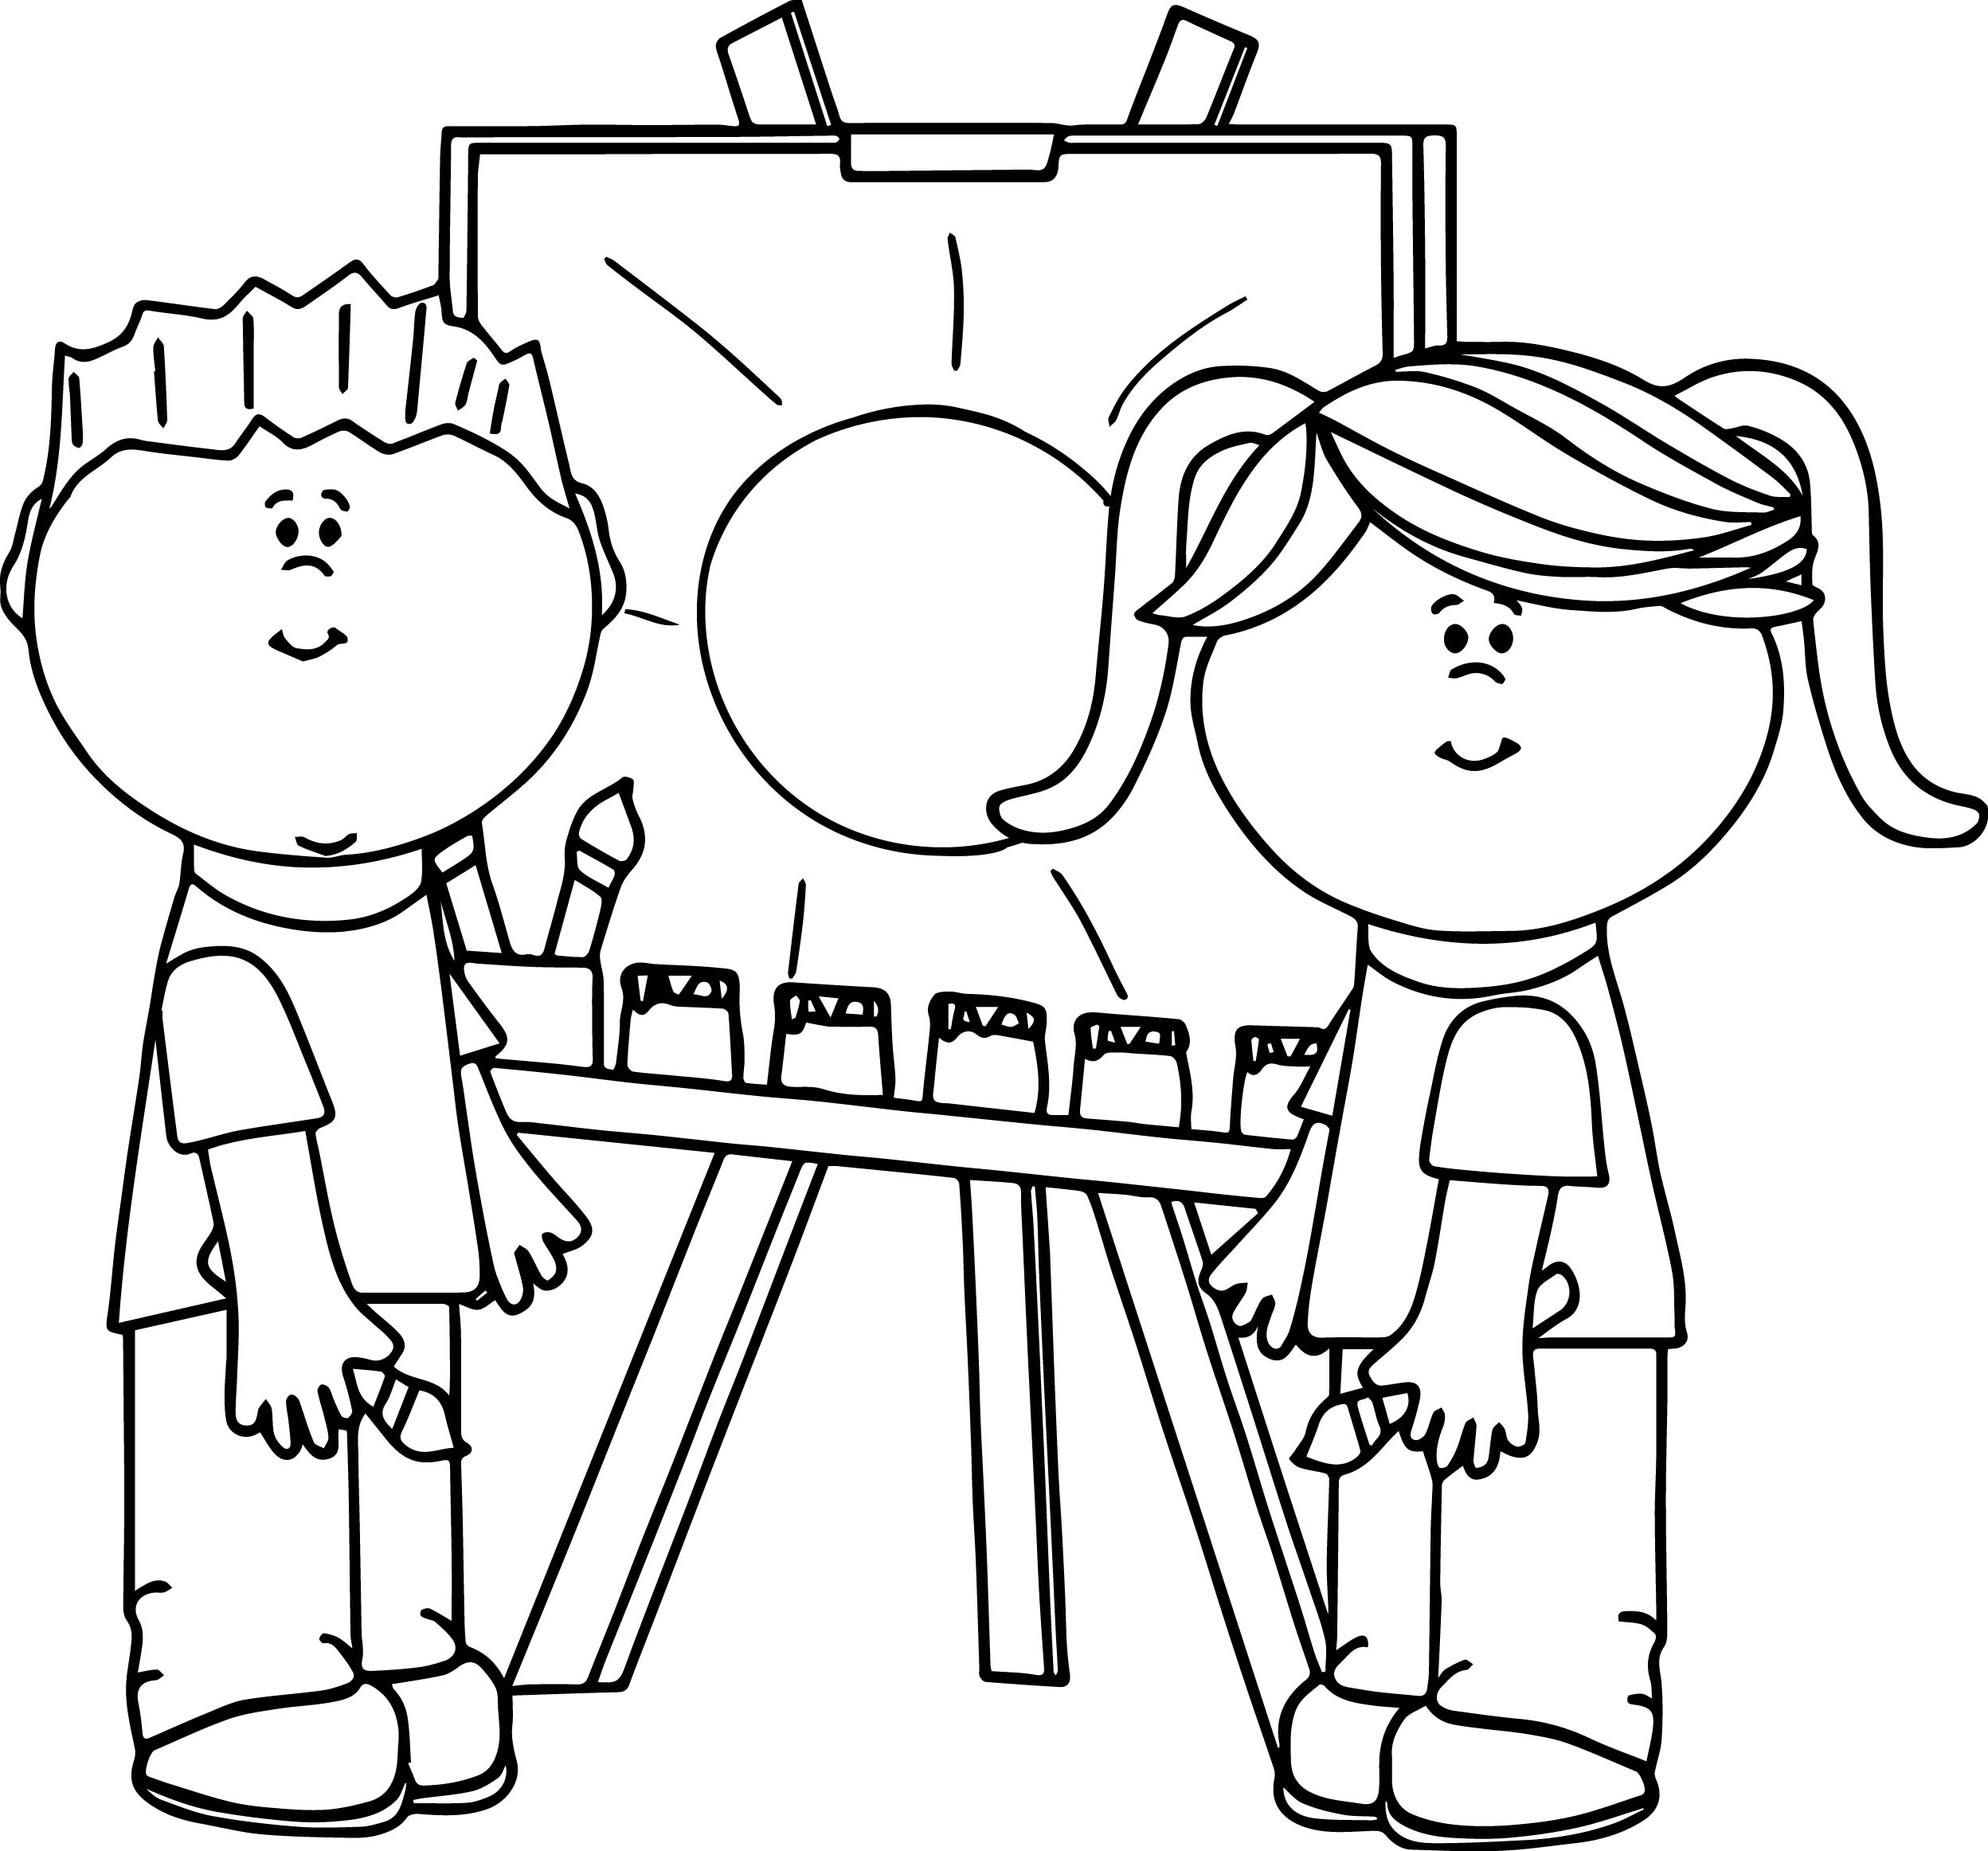 make coloring pages from photos - how to make a coloring page from a photo